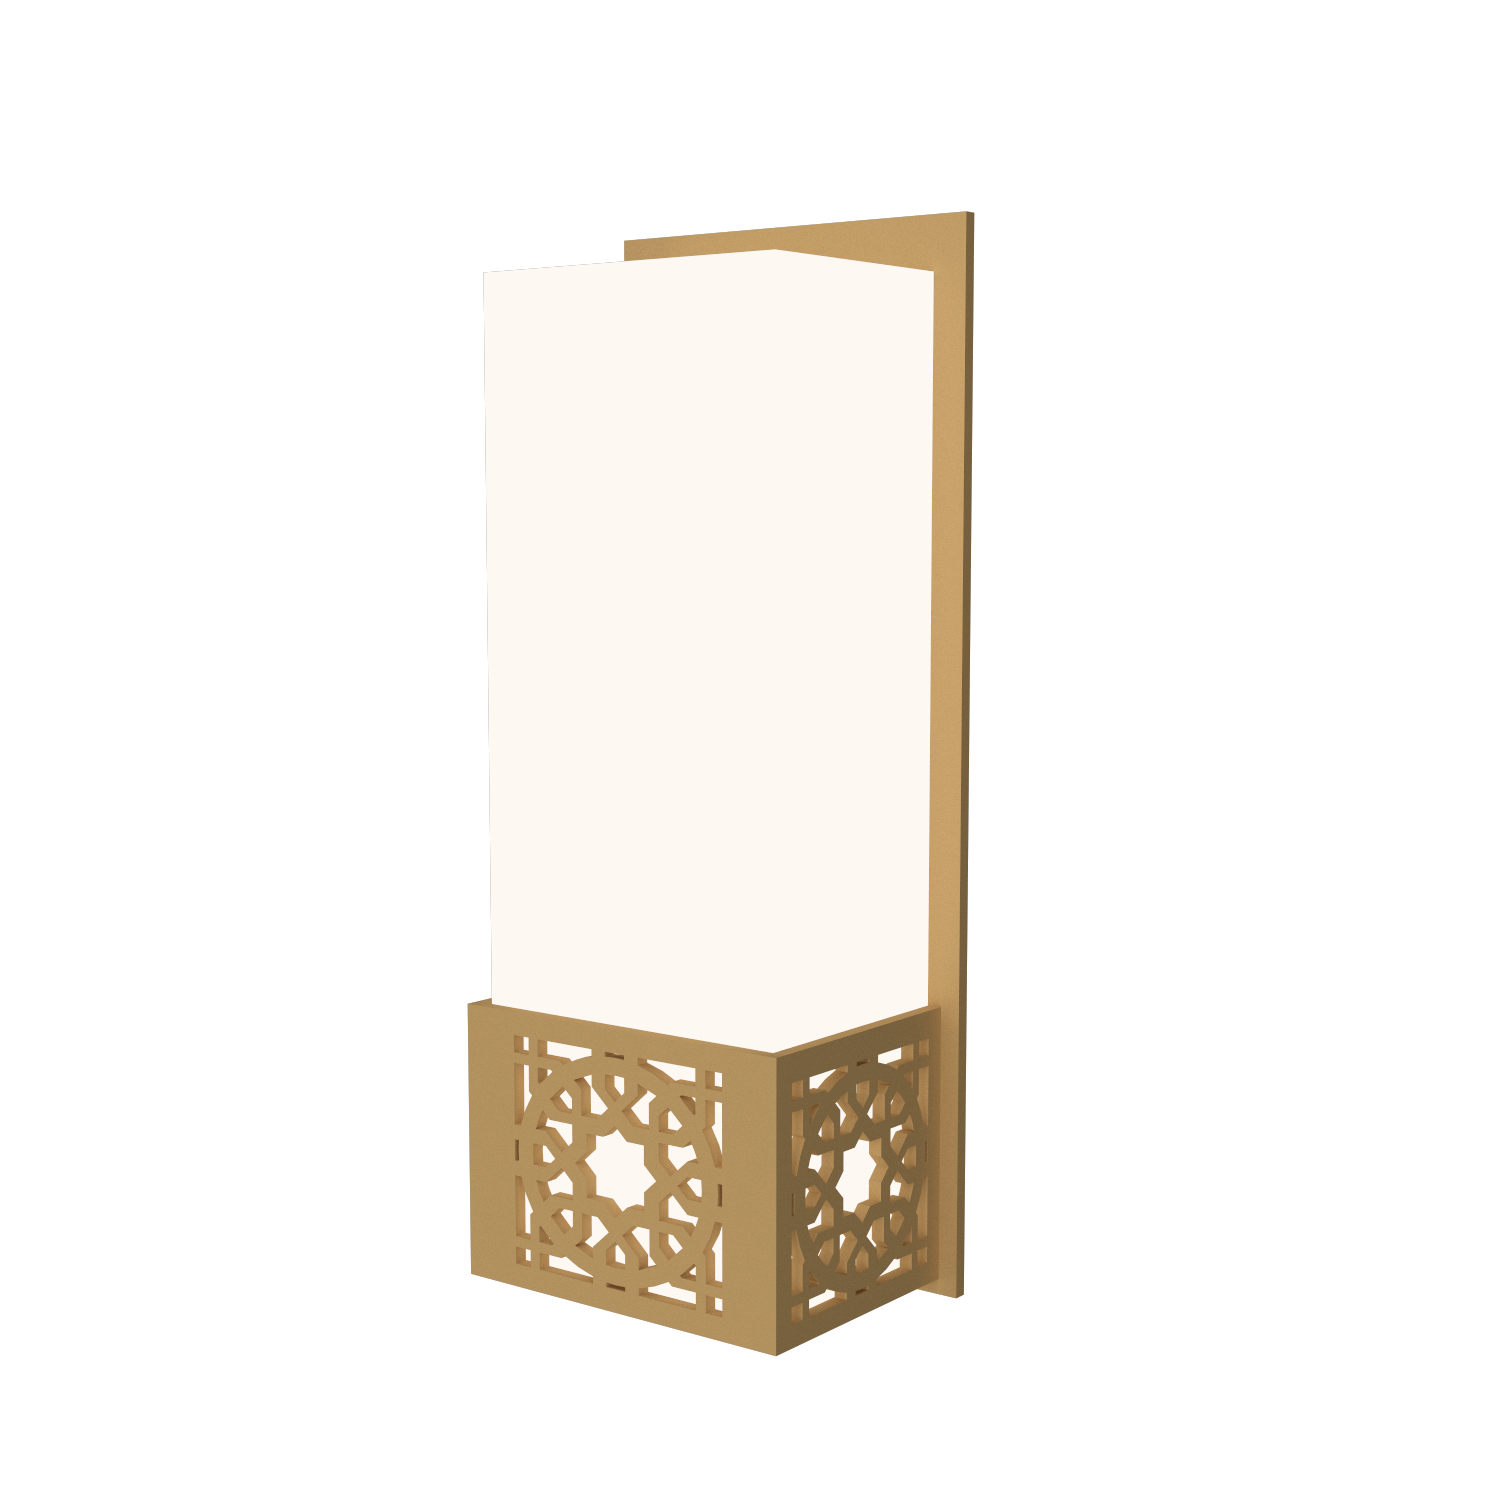 Wall Lamp Accord Patterns 4052 - Patterns Line Accord Lighting | 27. Gold